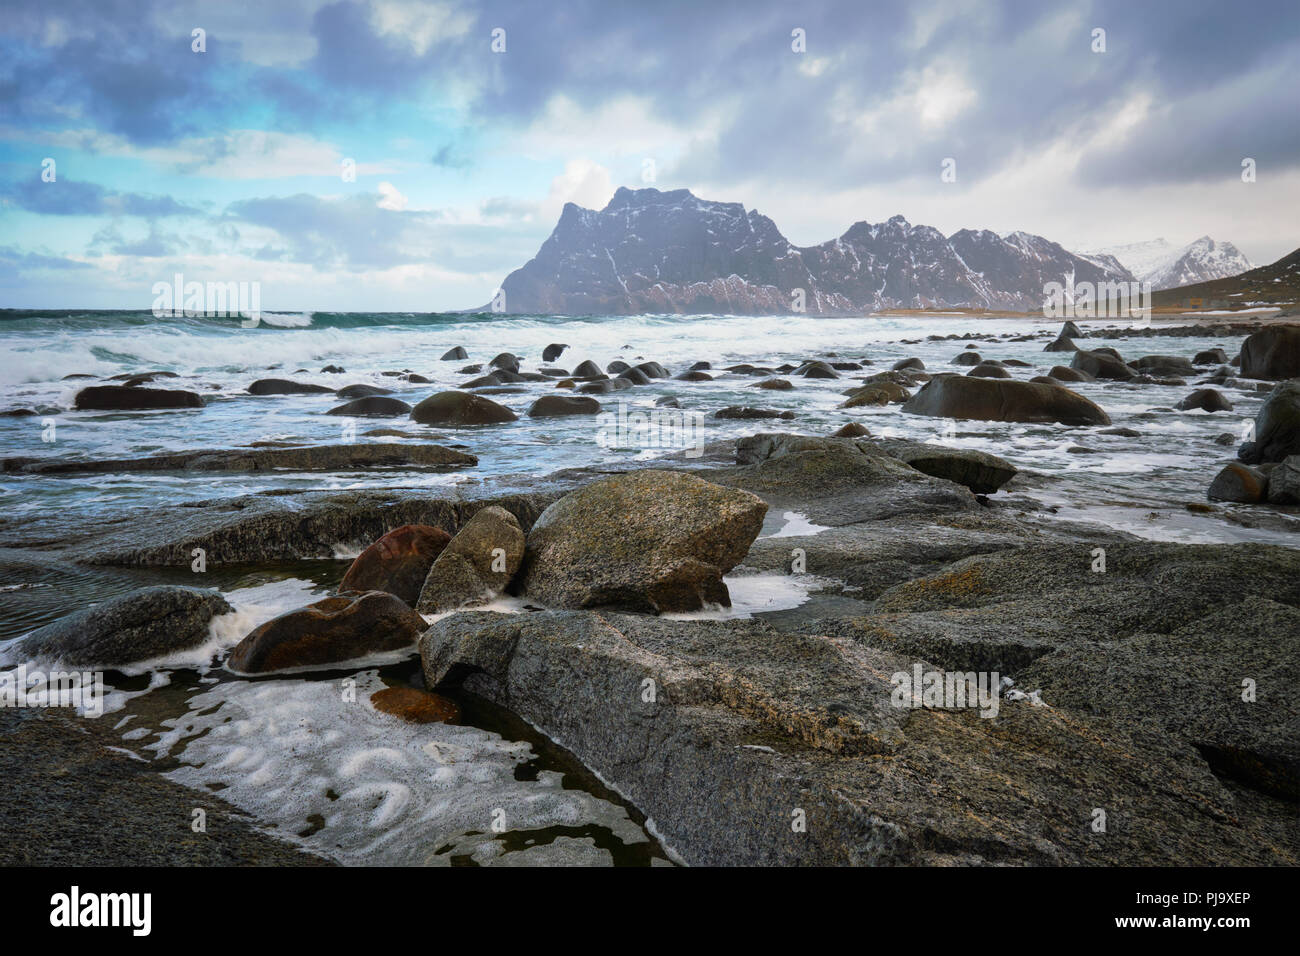 Beach of fjord in Norway - Stock Image